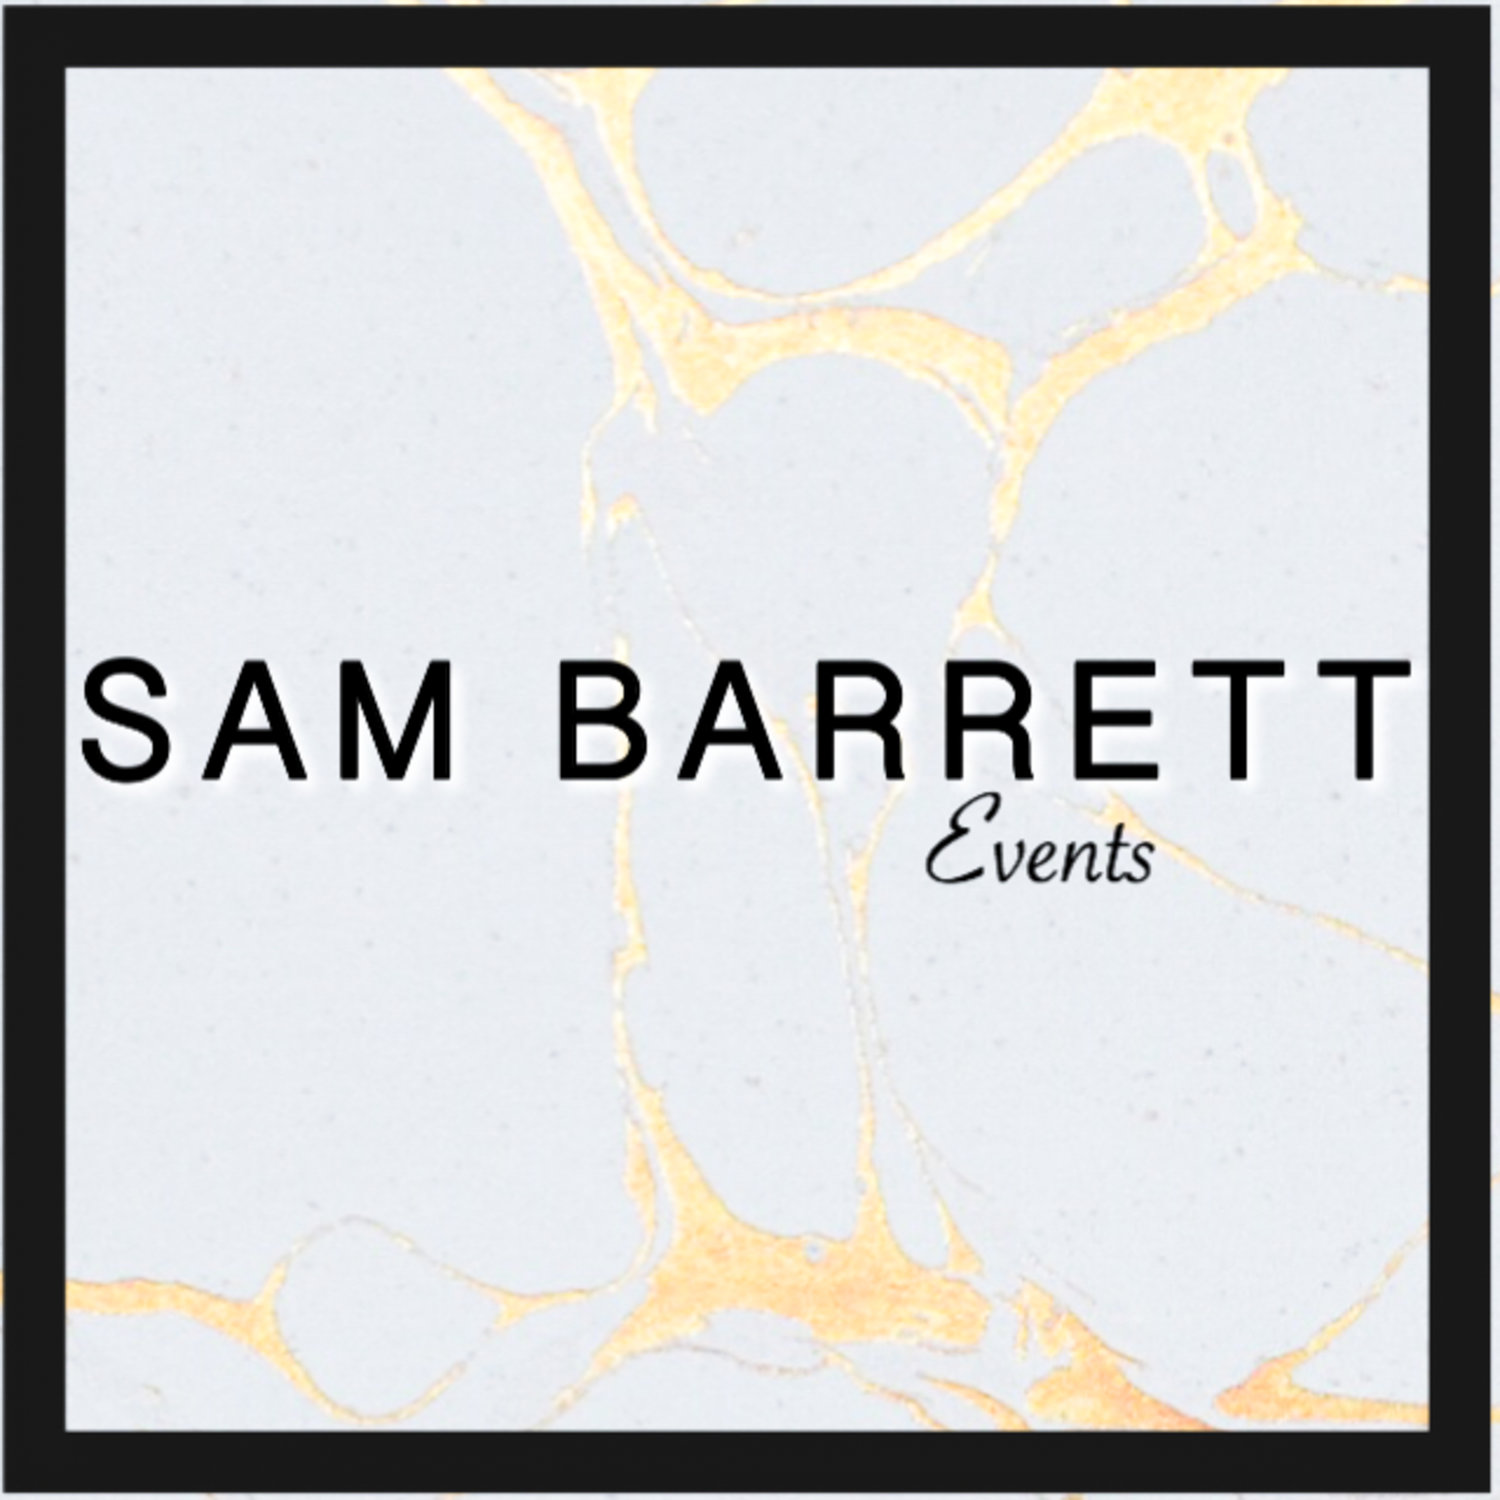 sam barrett events